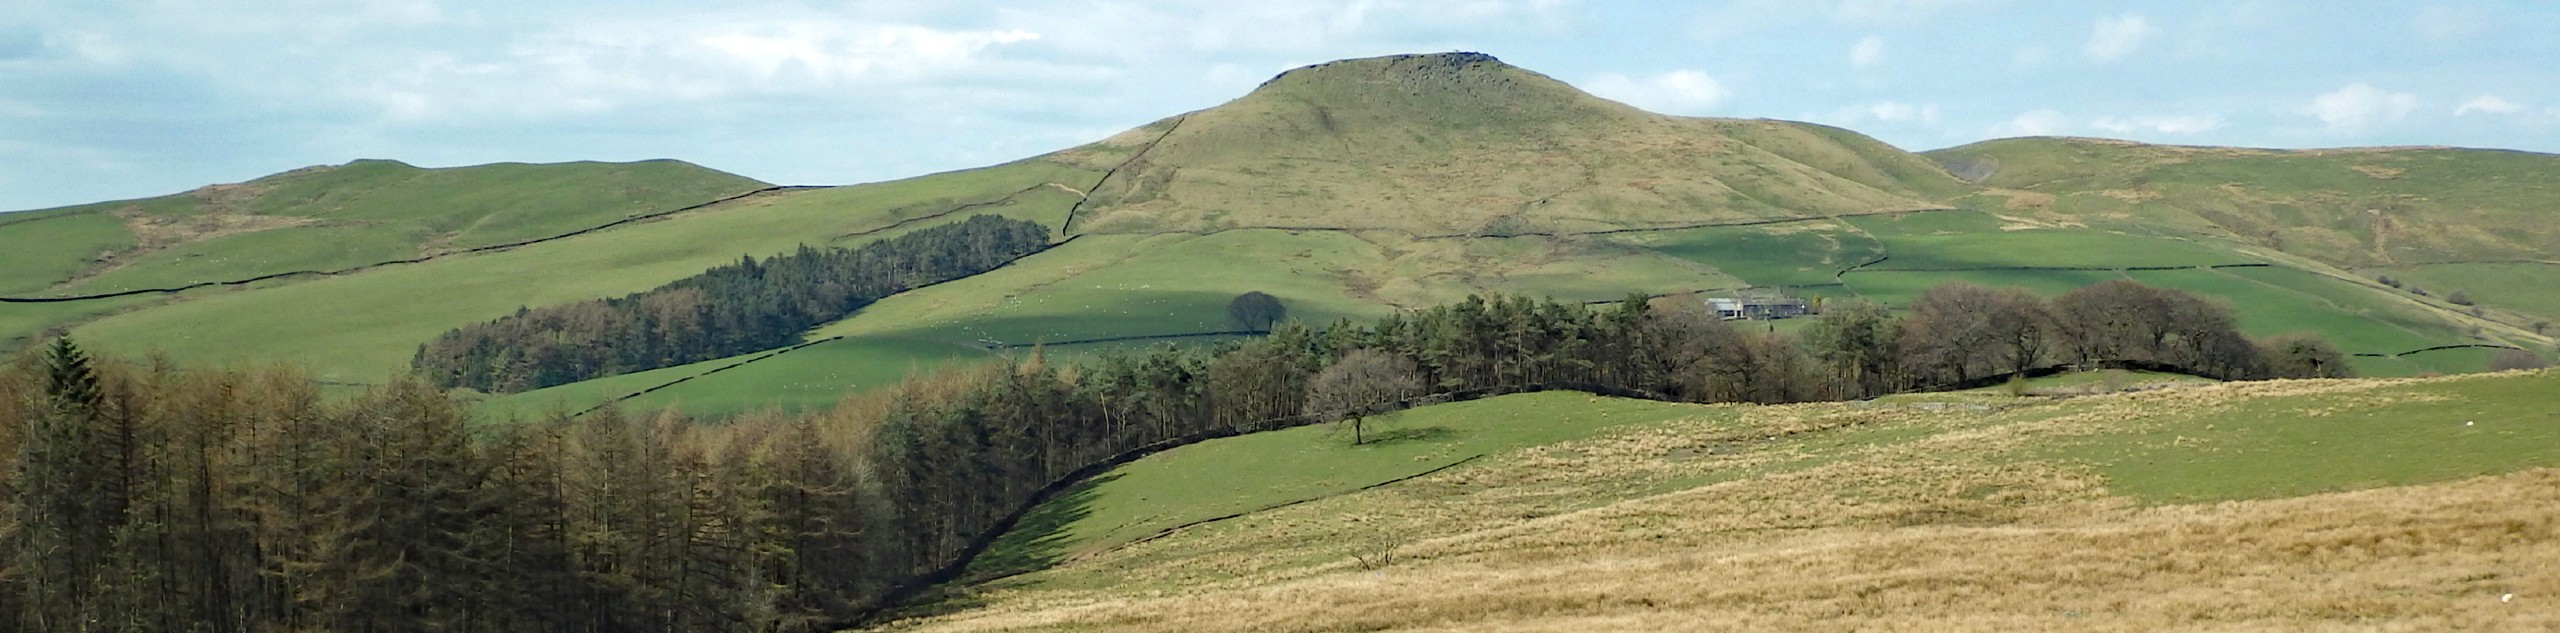 Tegg's Nose and Macclesfield Forest